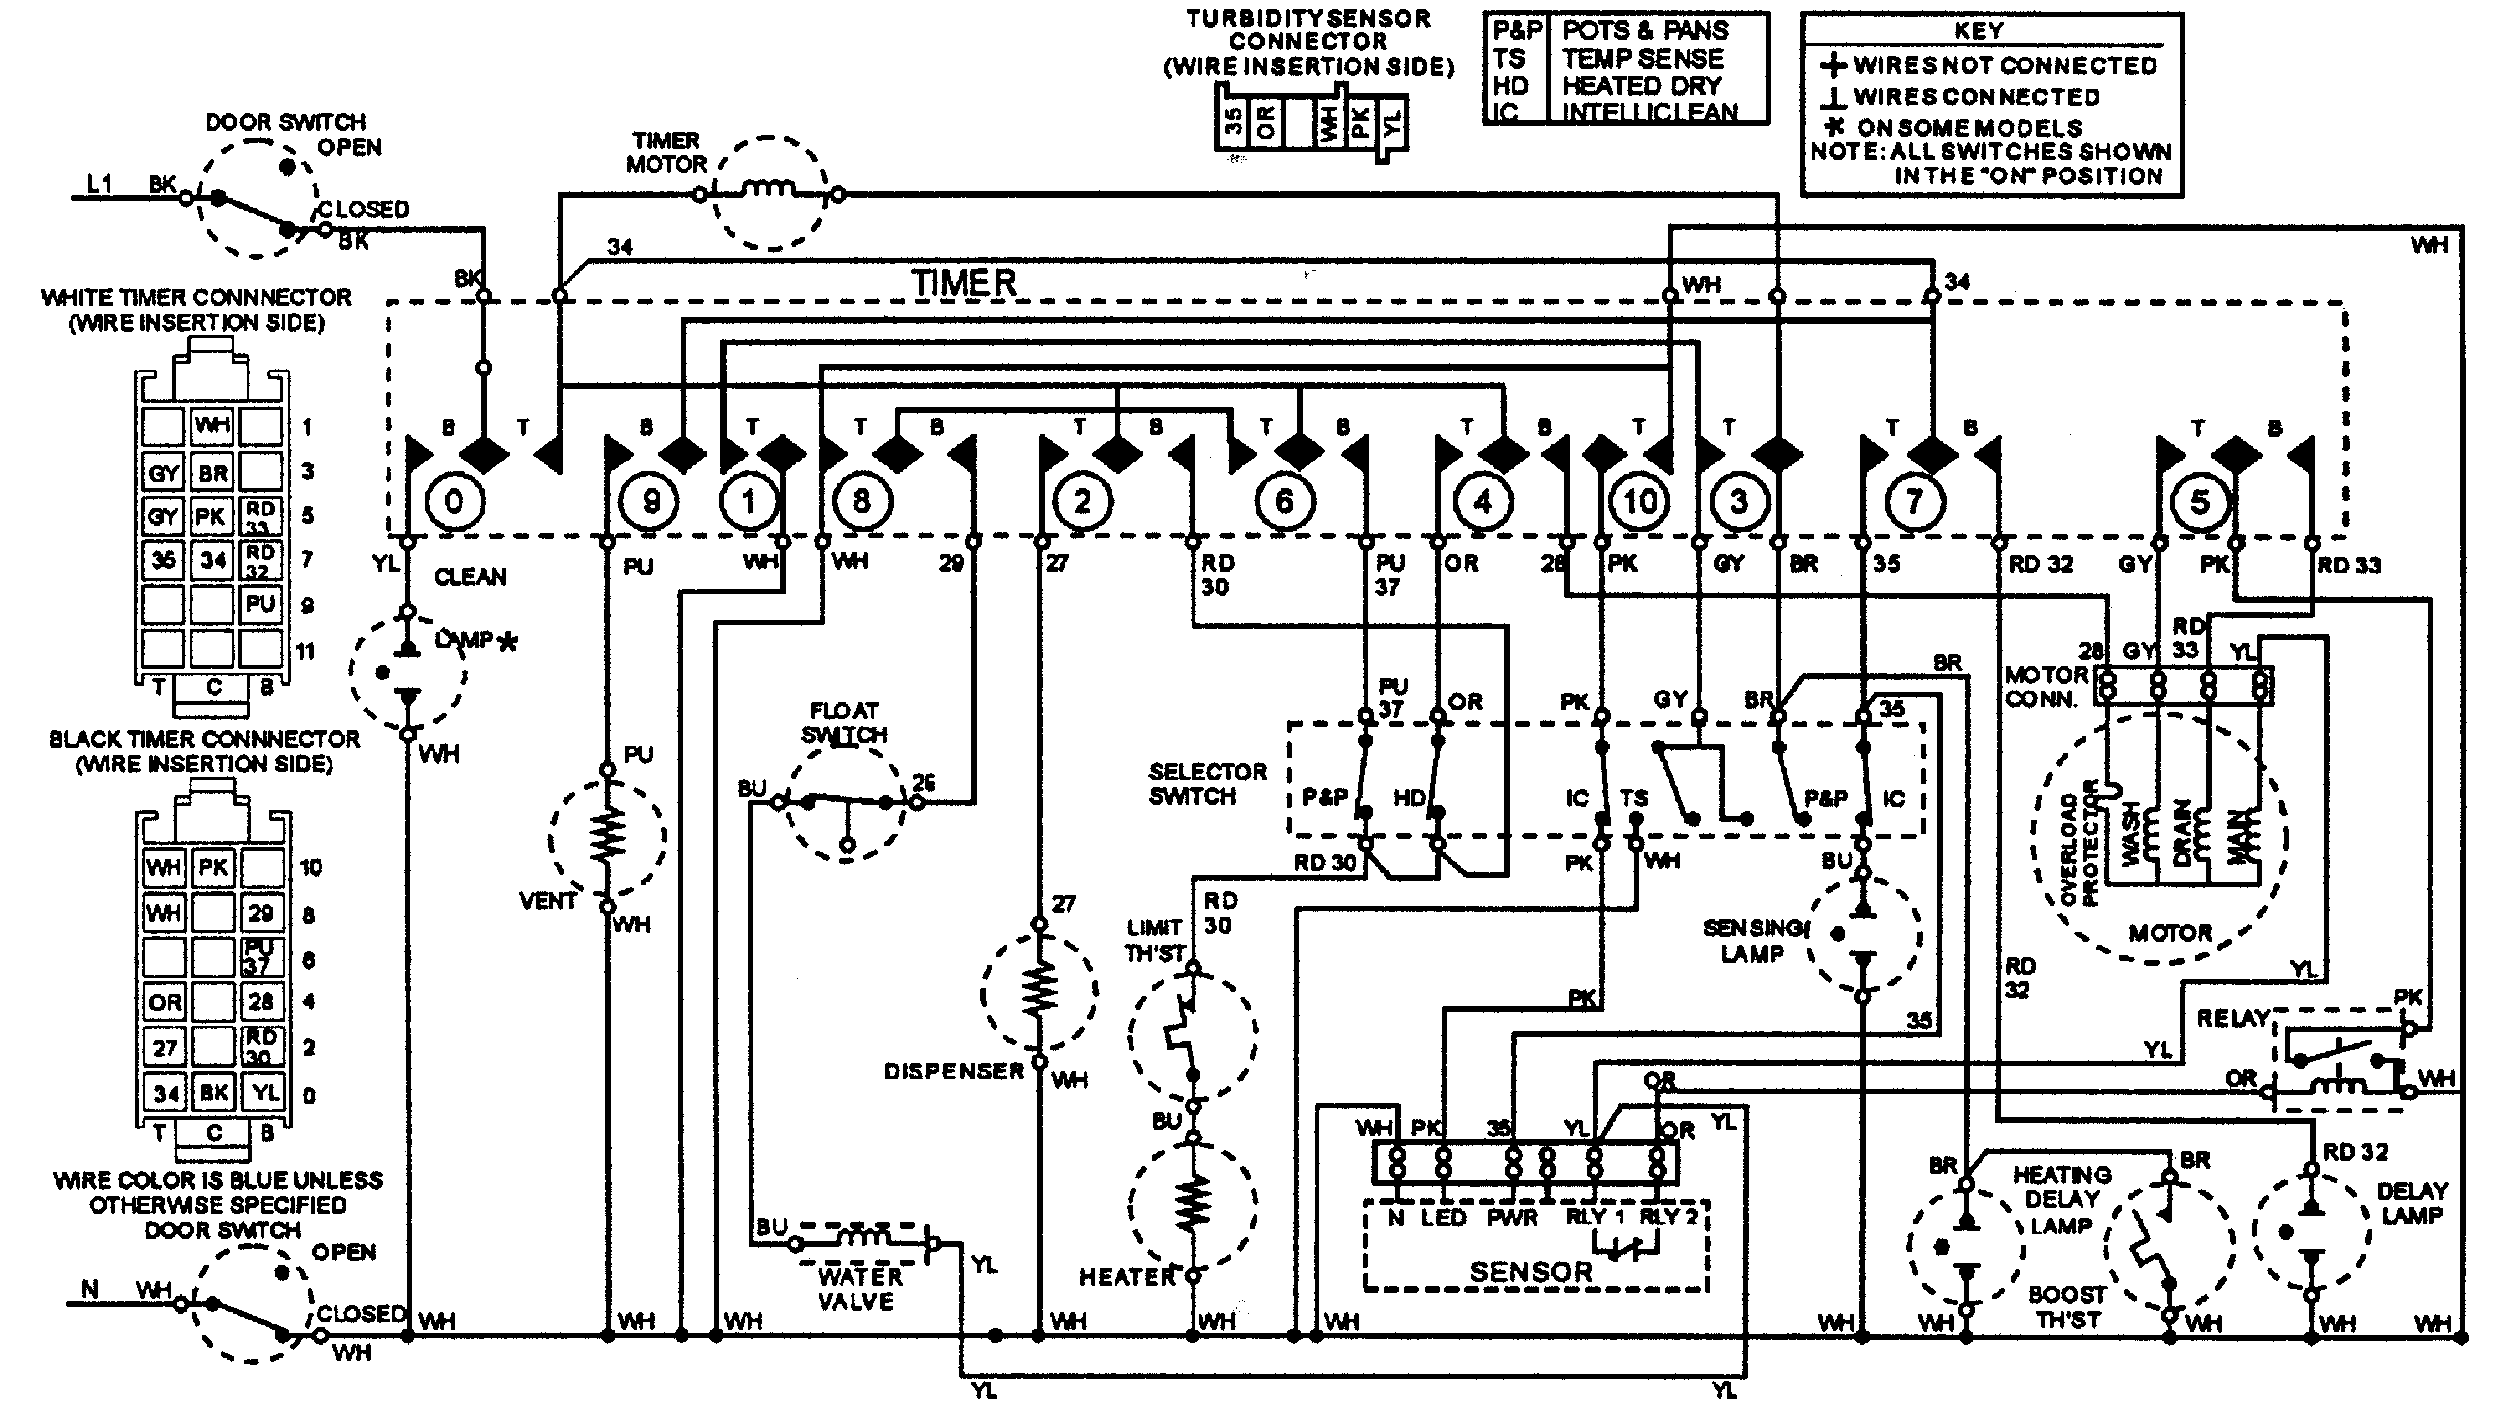 Maytag mdb6000awa timer stove clocks and appliance timers mdb6000awa dishwasher wiring information parts diagram pooptronica Gallery